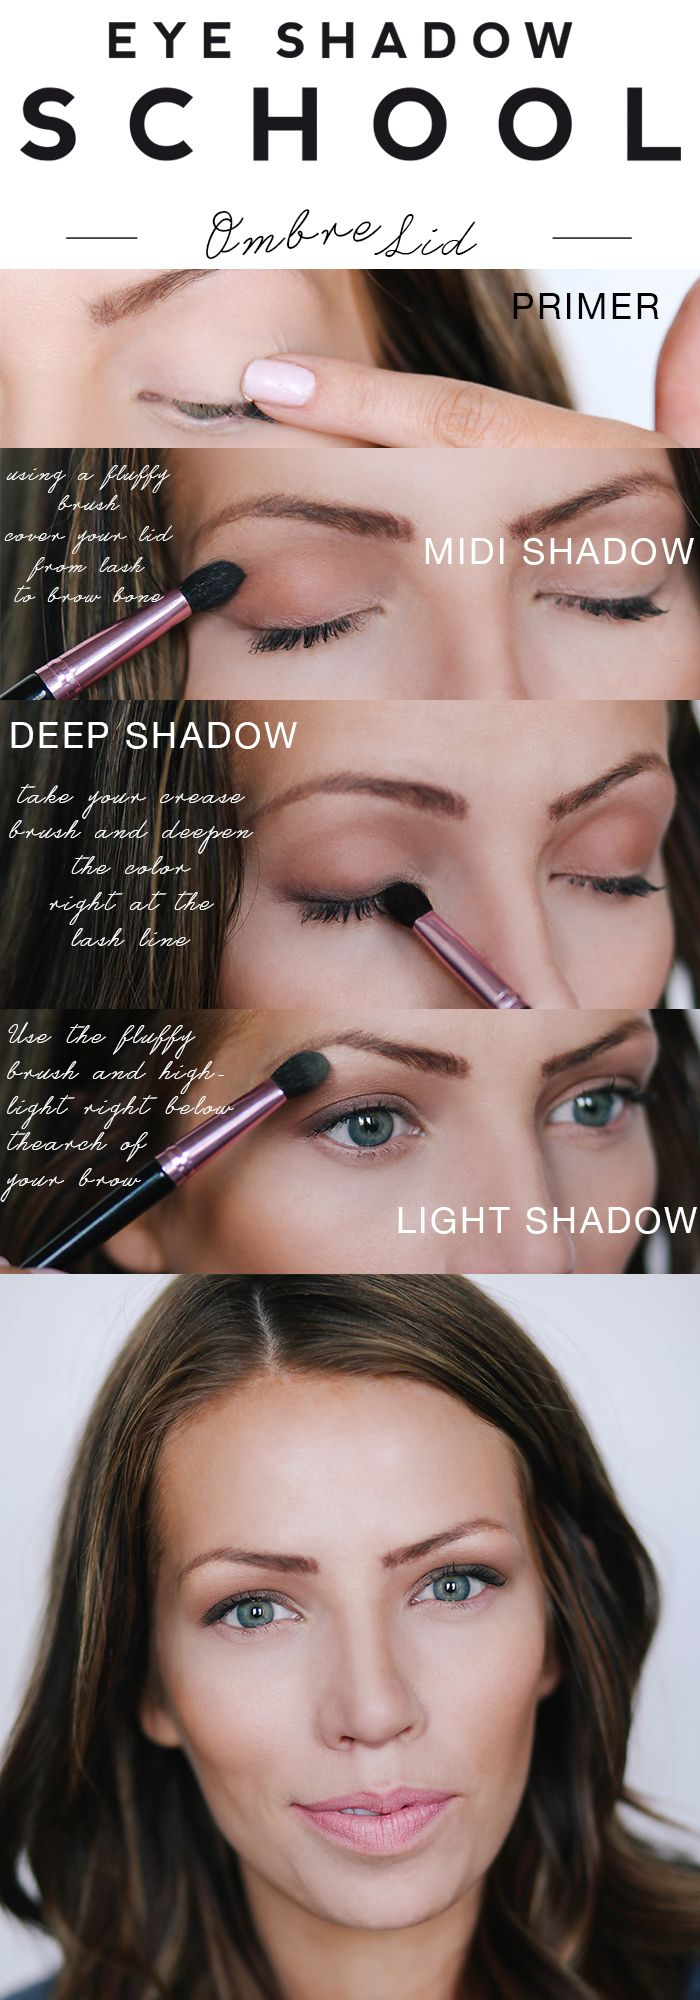 Every Eyeshadow technique simplified